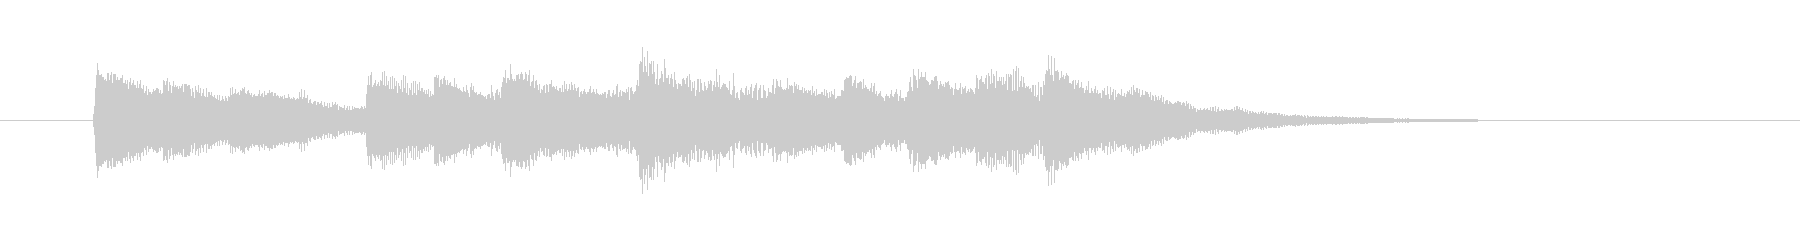 A short song of a pretty sparkly bell's unreproduced waveform